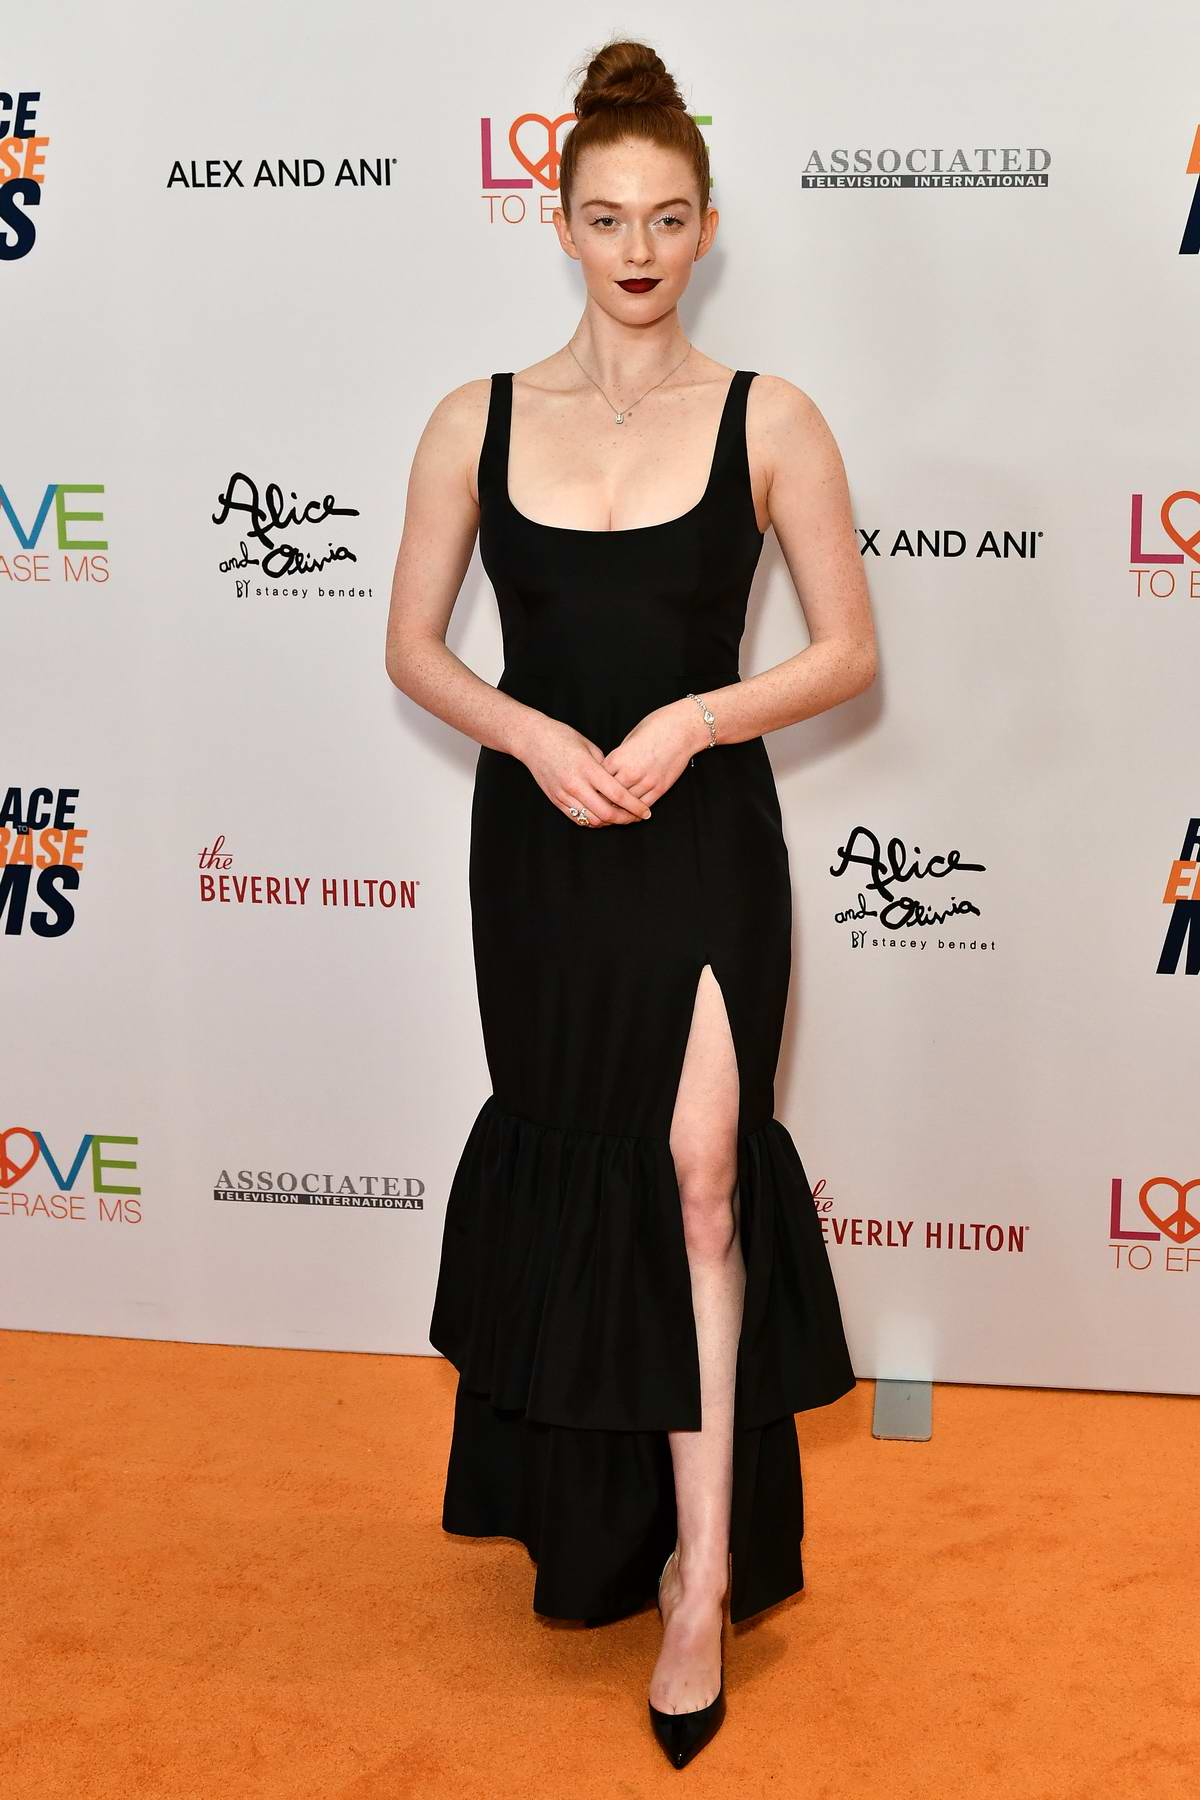 Larsen Thompson attends the 26th Annual Race to Erase MS GALA held at the Beverly Hilton Hotel in Beverly Hills, Los Angeles